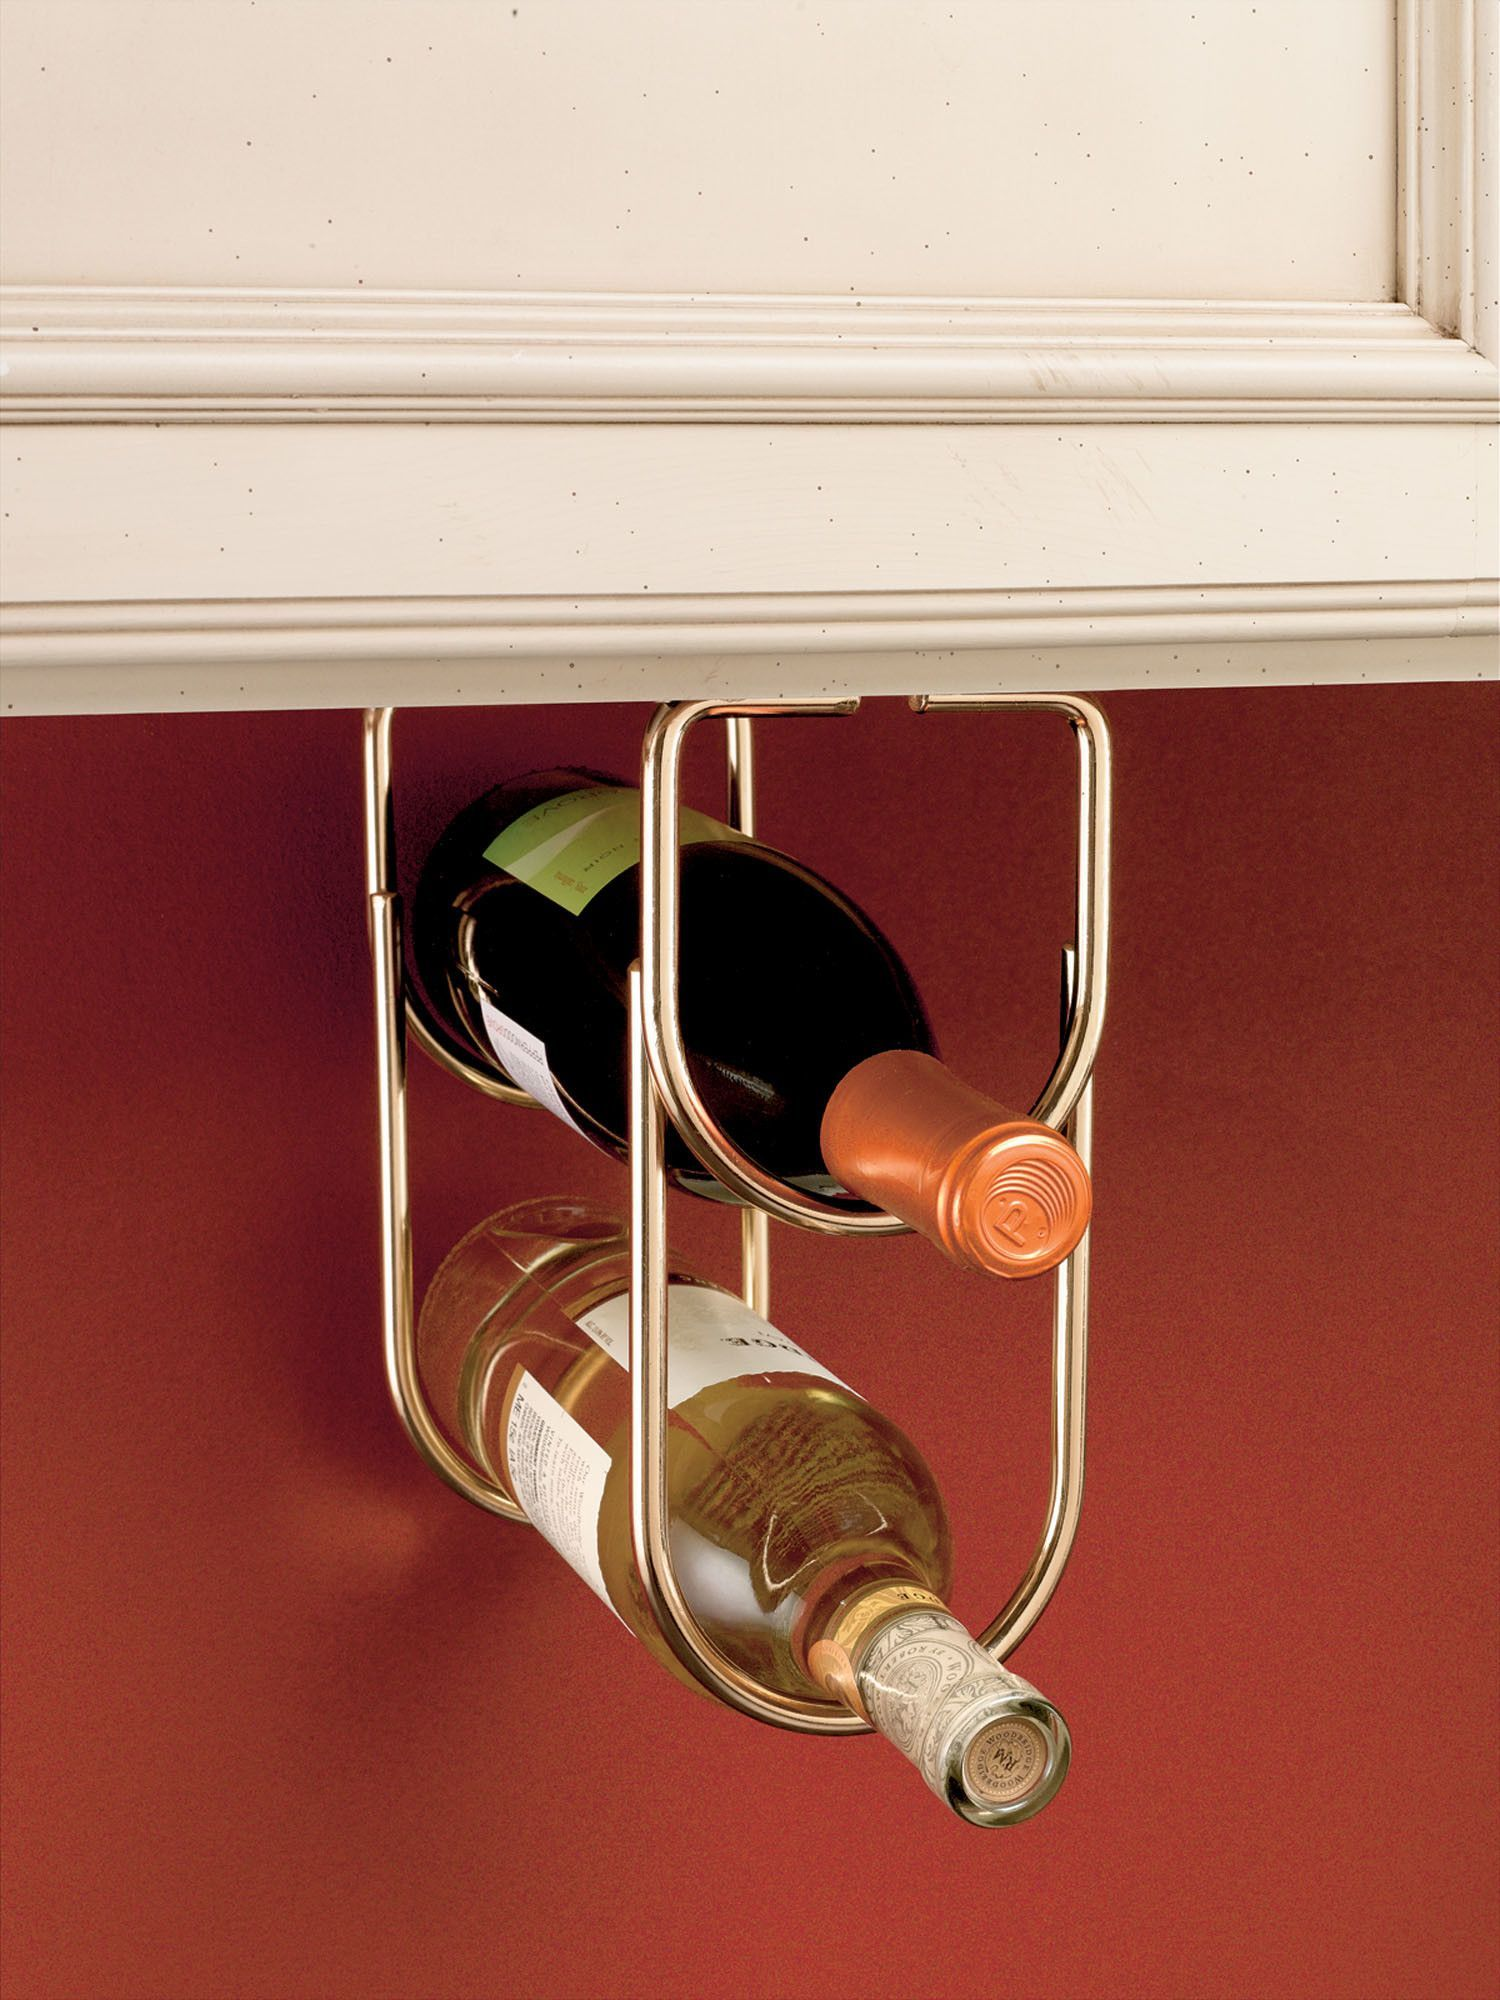 2 Bottle Hanging Wine Bottle Rack Hanging Wine Rack Wine Bottle Rack Bottle Rack